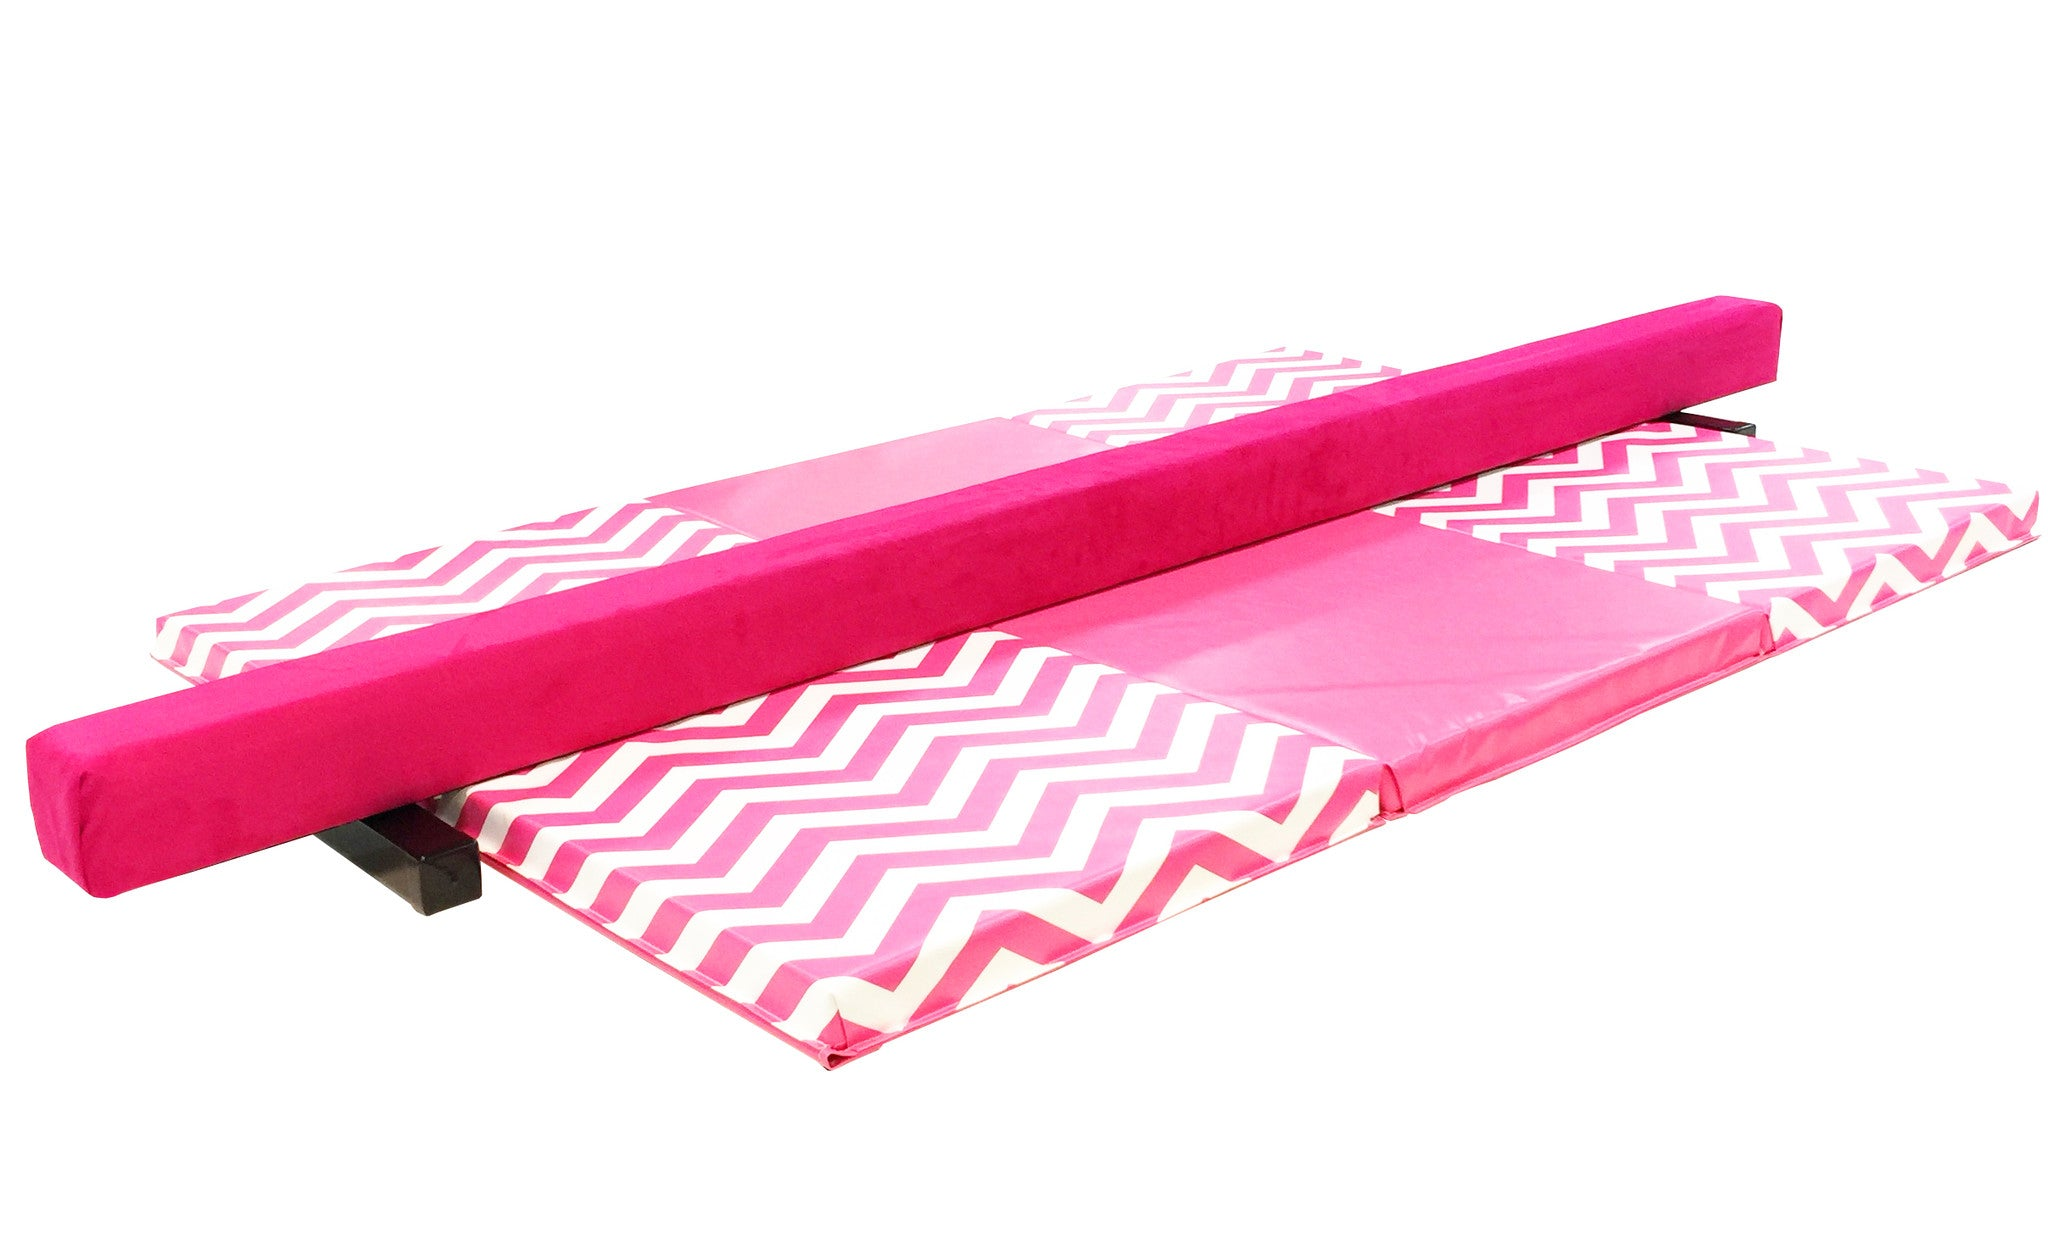 Chevron Print Gymnastics Balance Beam and Folding Mat Combo Package